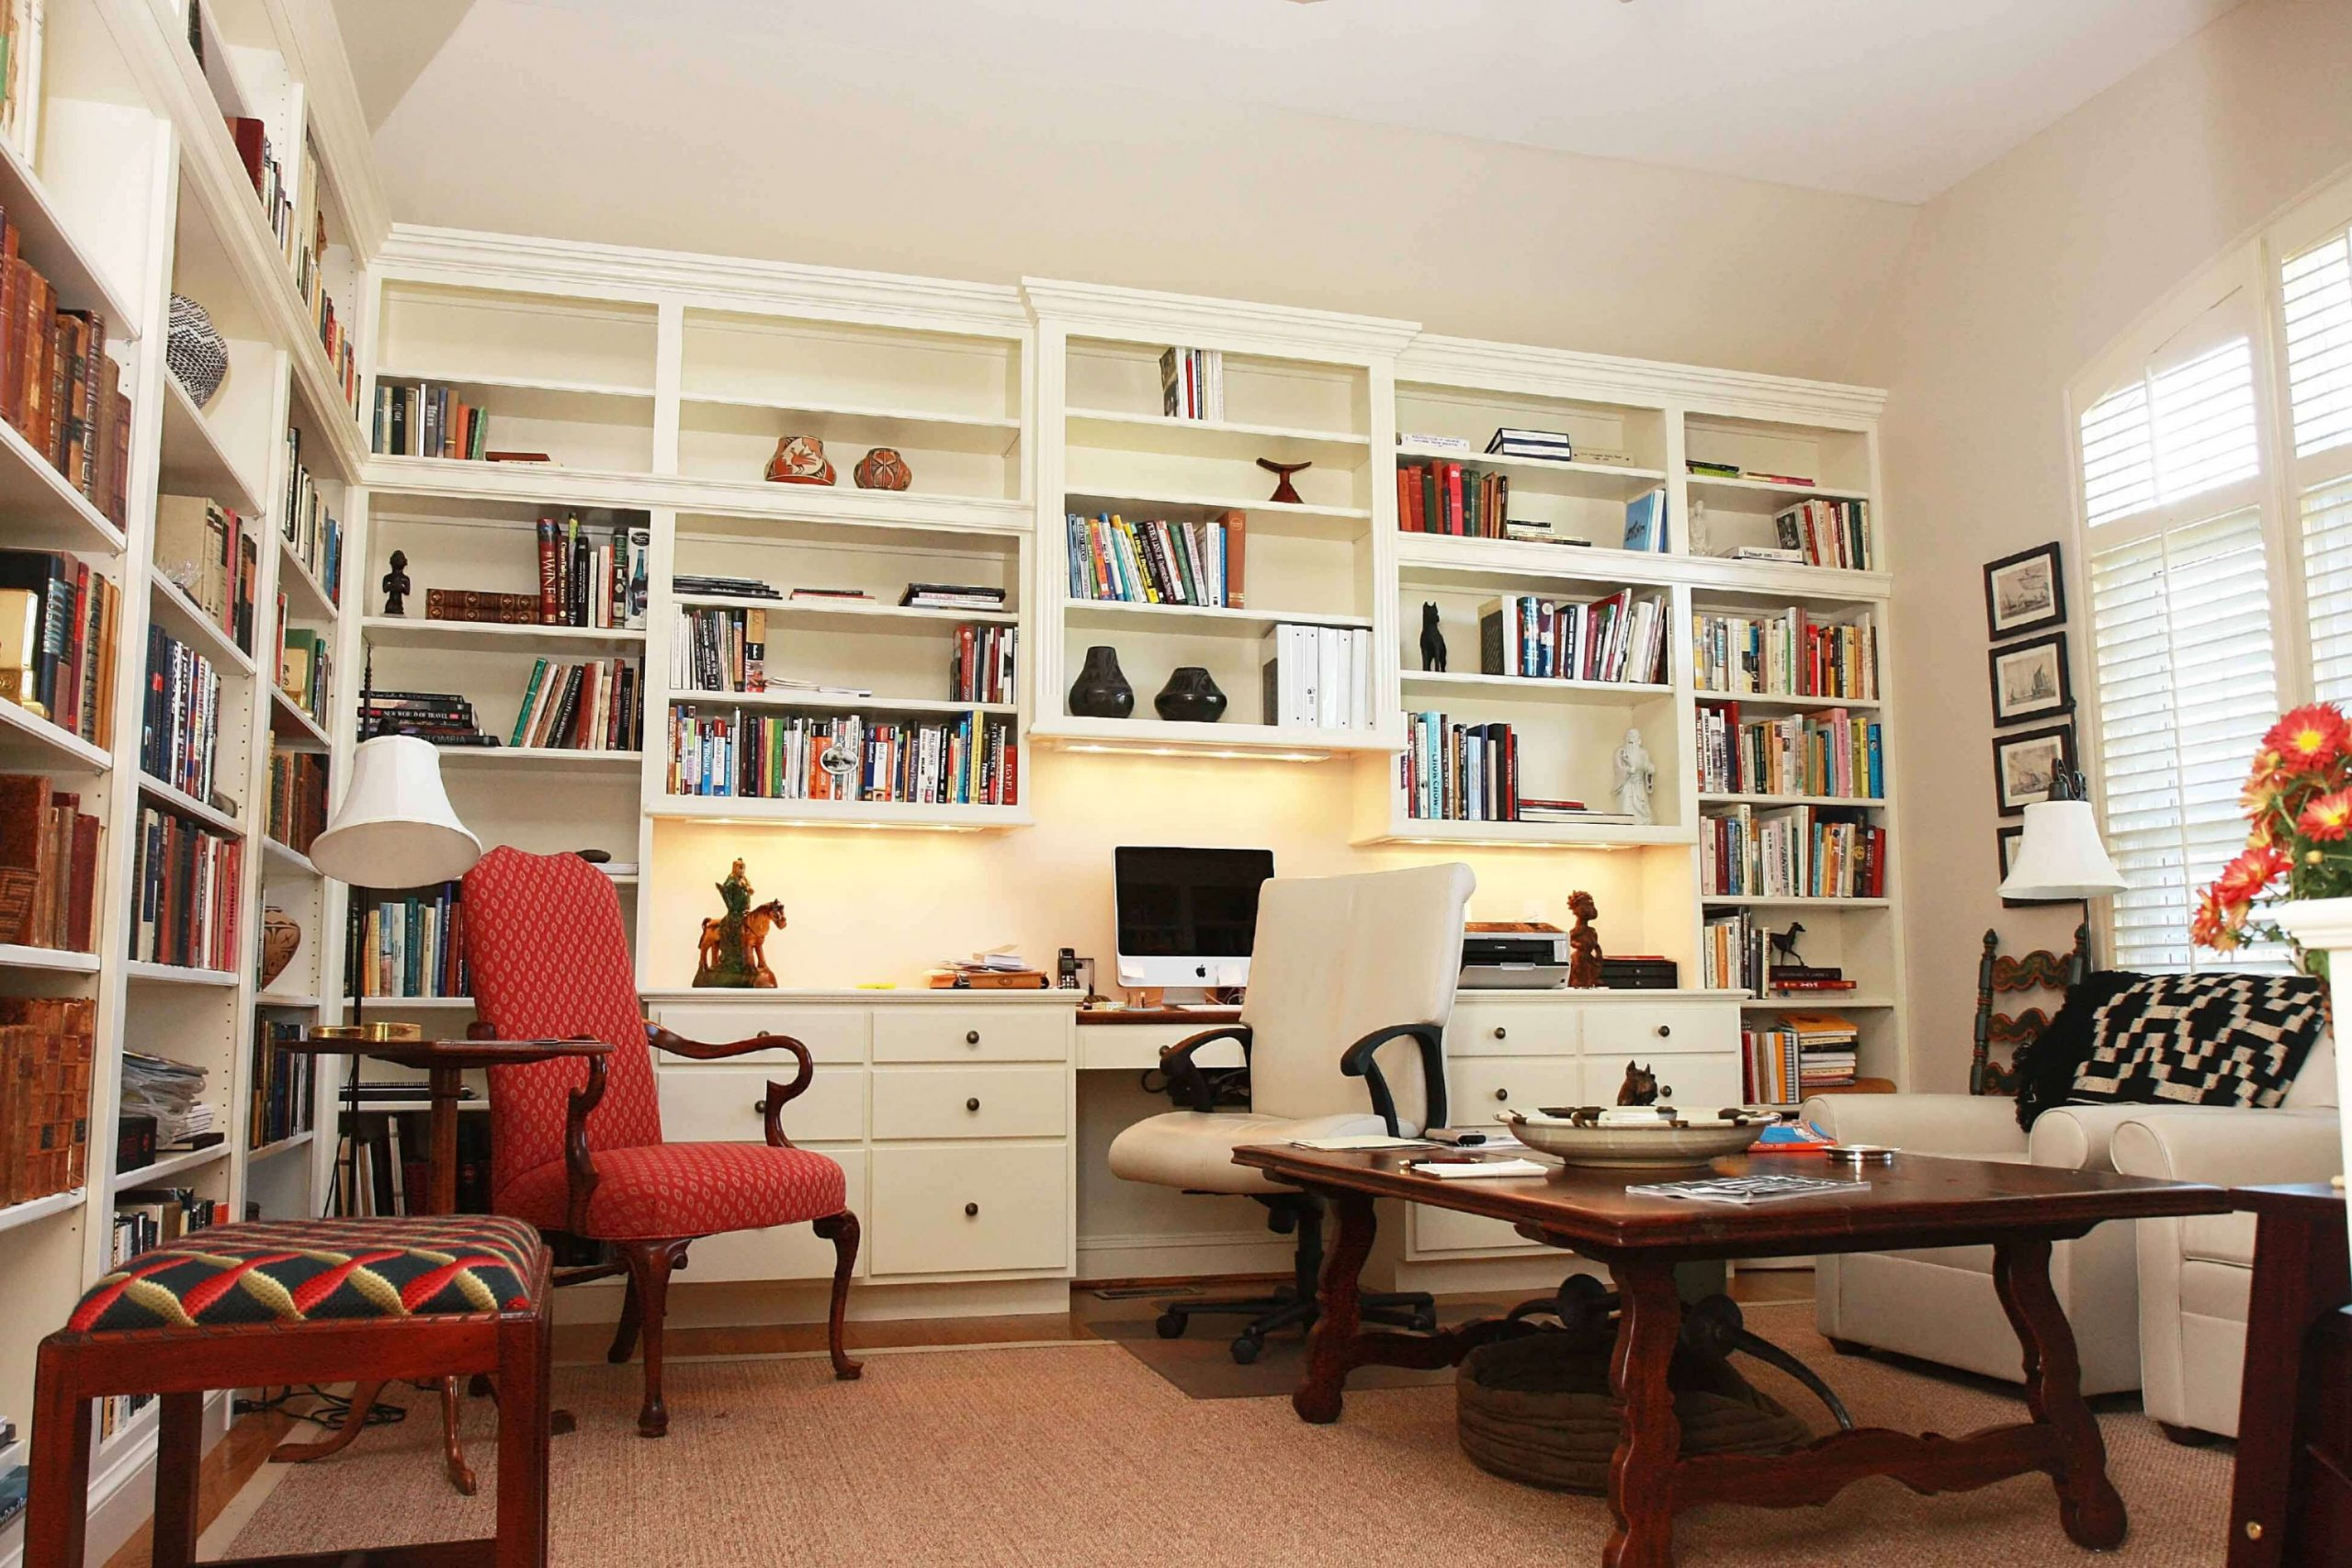 9 Smart Unfinished Basement Ideas on a Budget  You Should Try! - Home Office Ideas In Basement